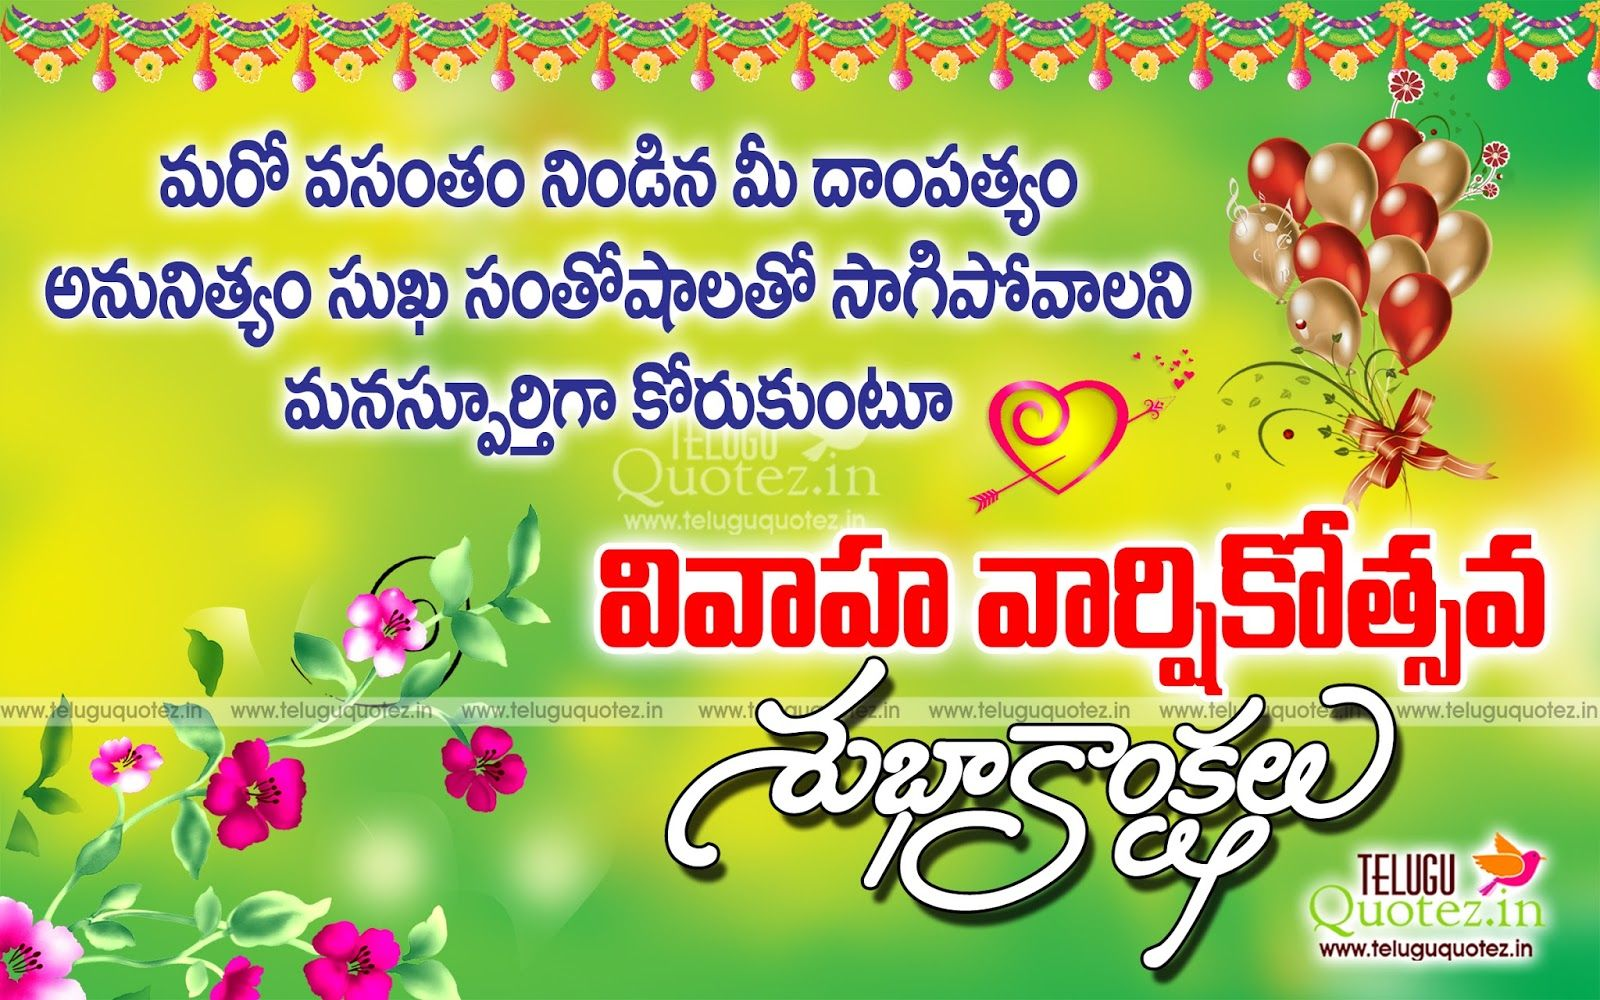 Best Telugu Marriage Anniversary Greetings and wishes to